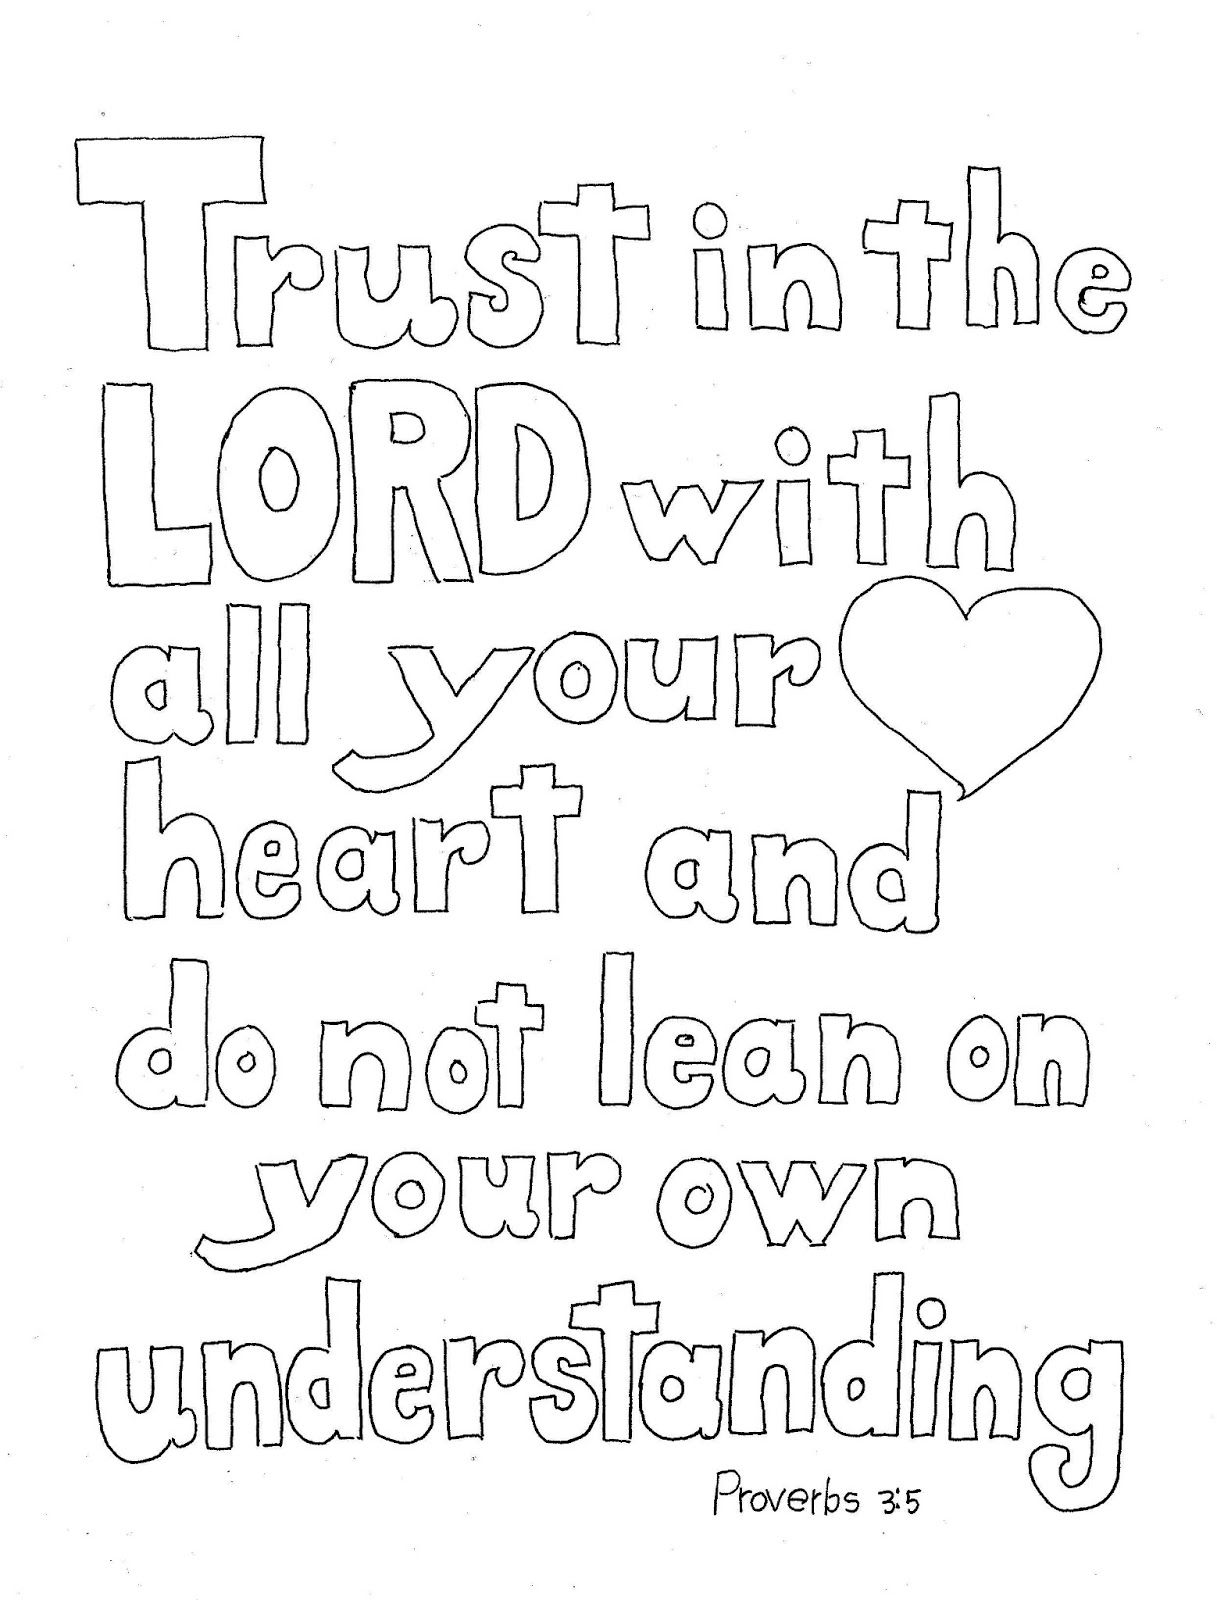 Coloring pages with bible verses - A Printable Coloring Page For The Bible Verse That Says Trust In The Lord With All Your Heart And Do Not Lean On Your Own Understanding